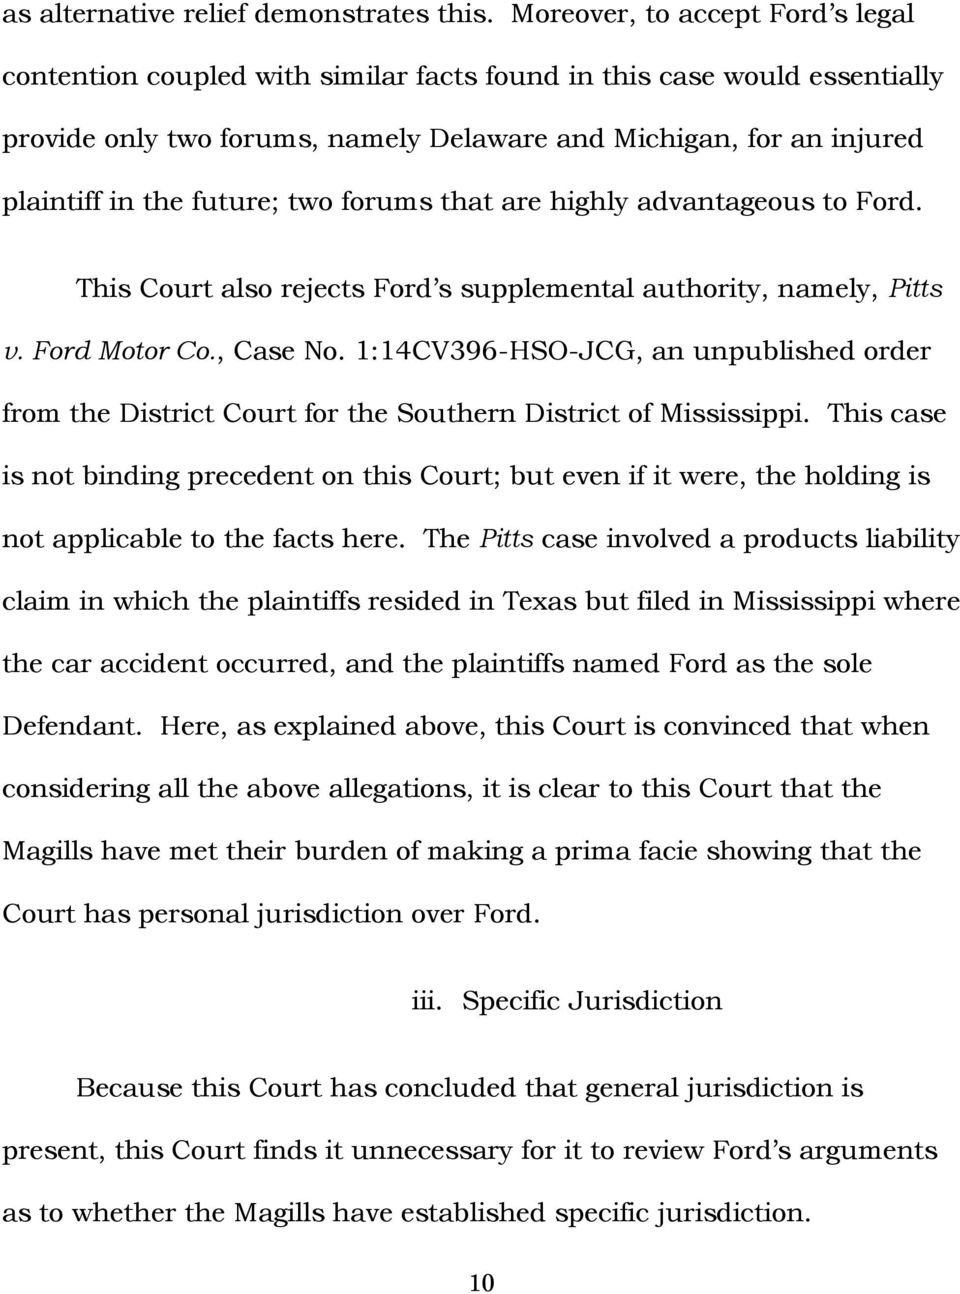 future; two forums that are highly advantageous to Ford. This Court also rejects Ford s supplemental authority, namely, Pitts v. Ford Motor Co., Case No.